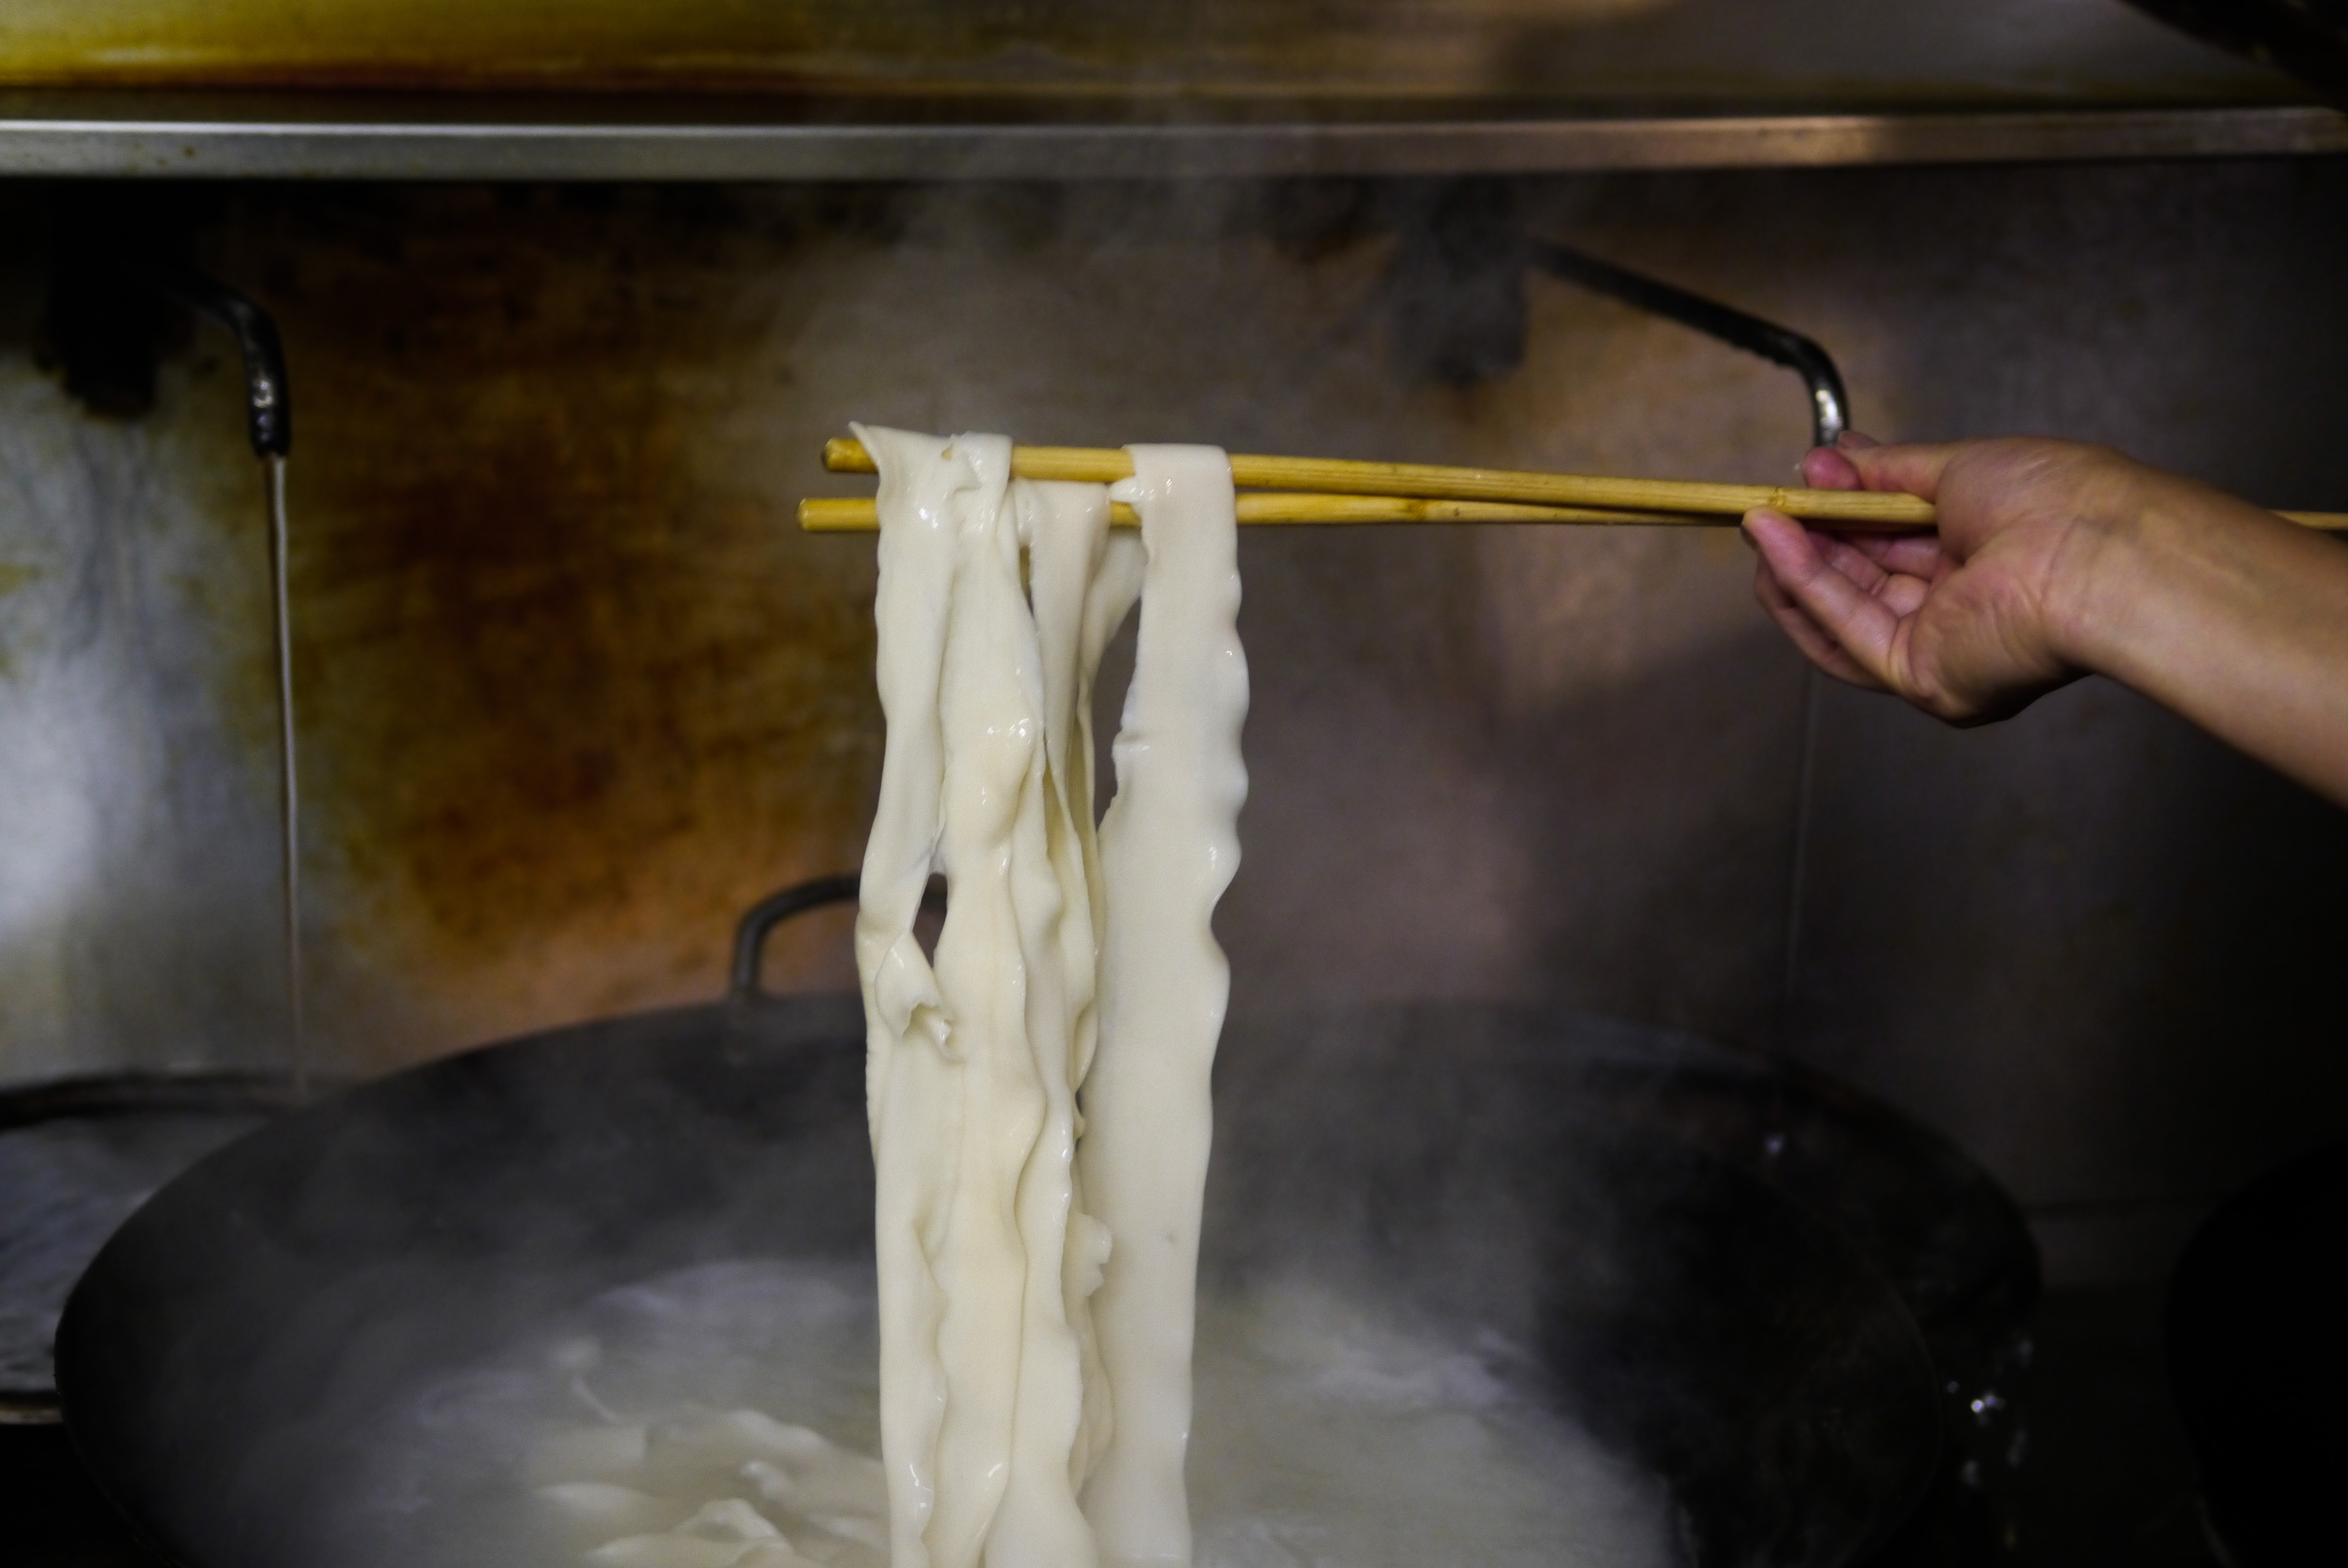 Hand-pulled biang biang noodles at Xi'an Chinese restaurant Xi'an Impression in north London